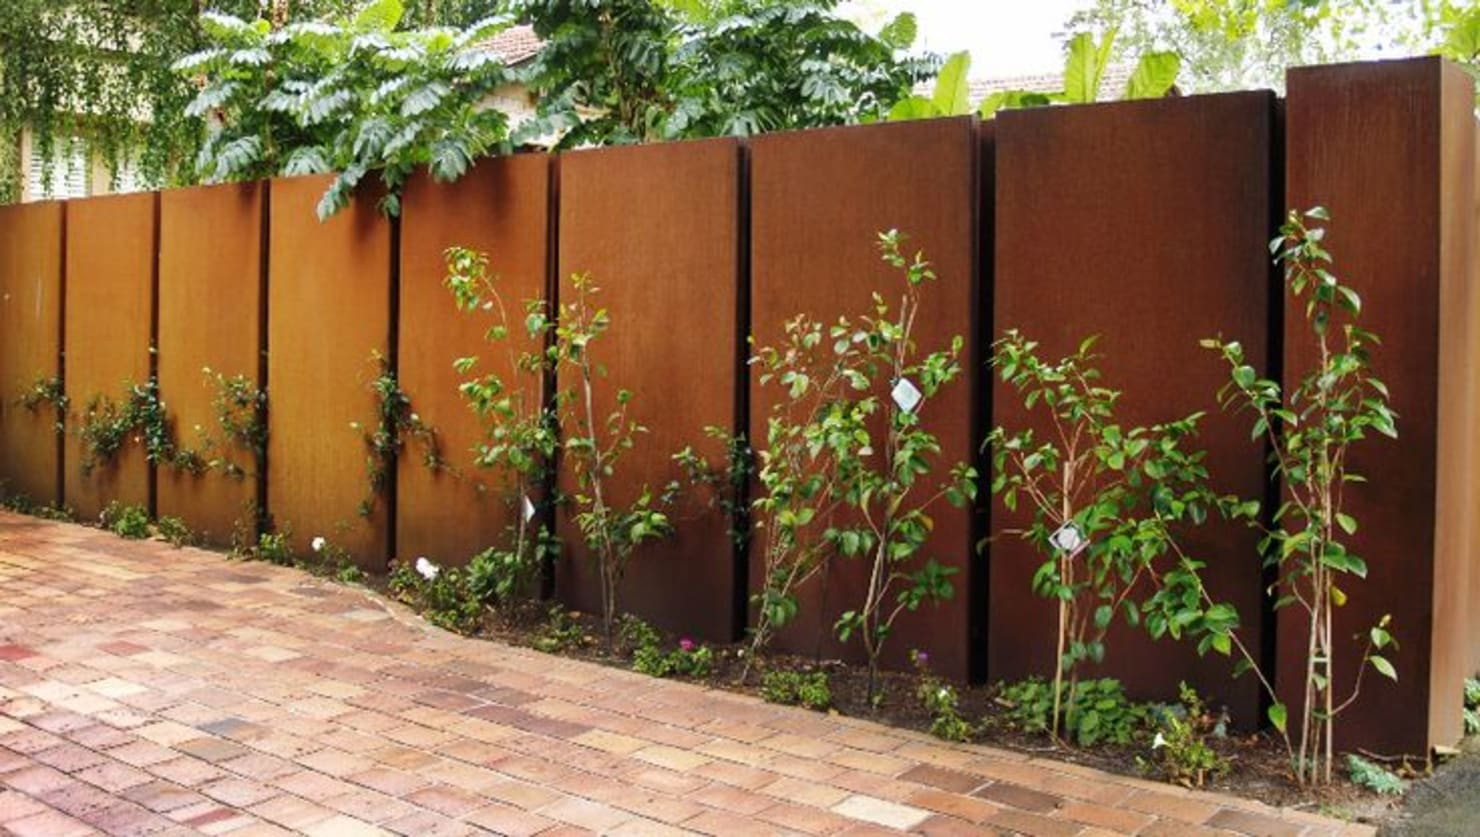 Garden: 12 garden fences your neighbors will definitely want to copy!